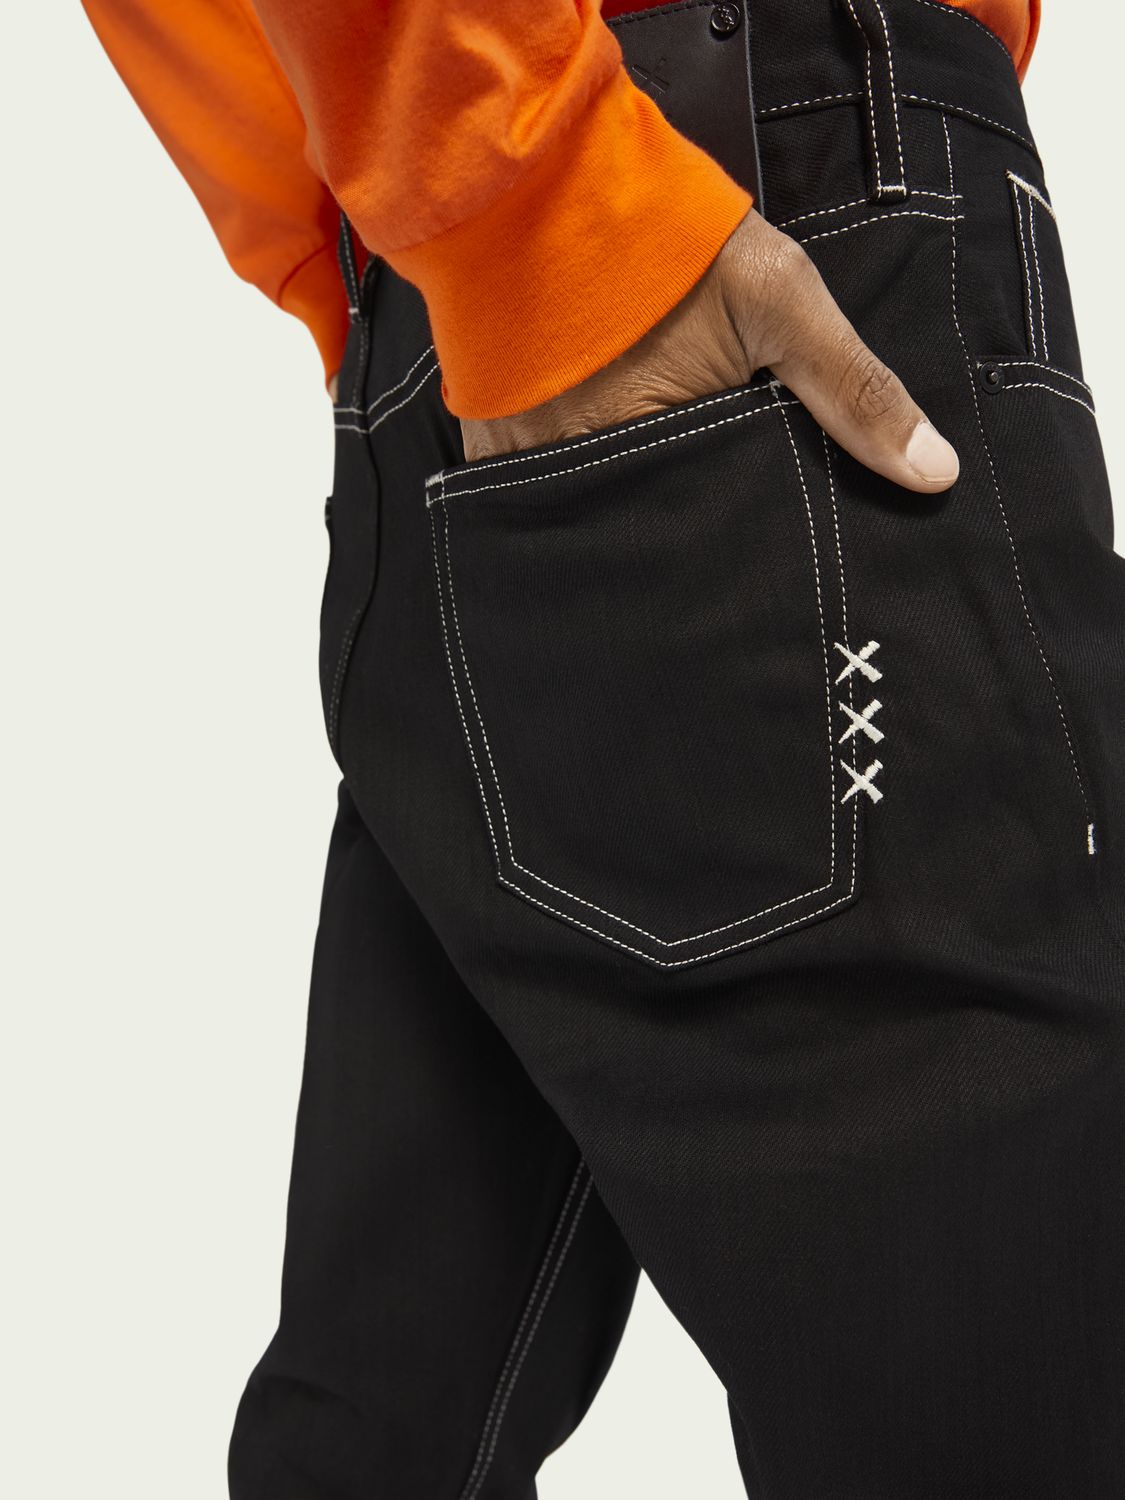 Men The Norm straight high-rise jeans ─ Black Selvedge